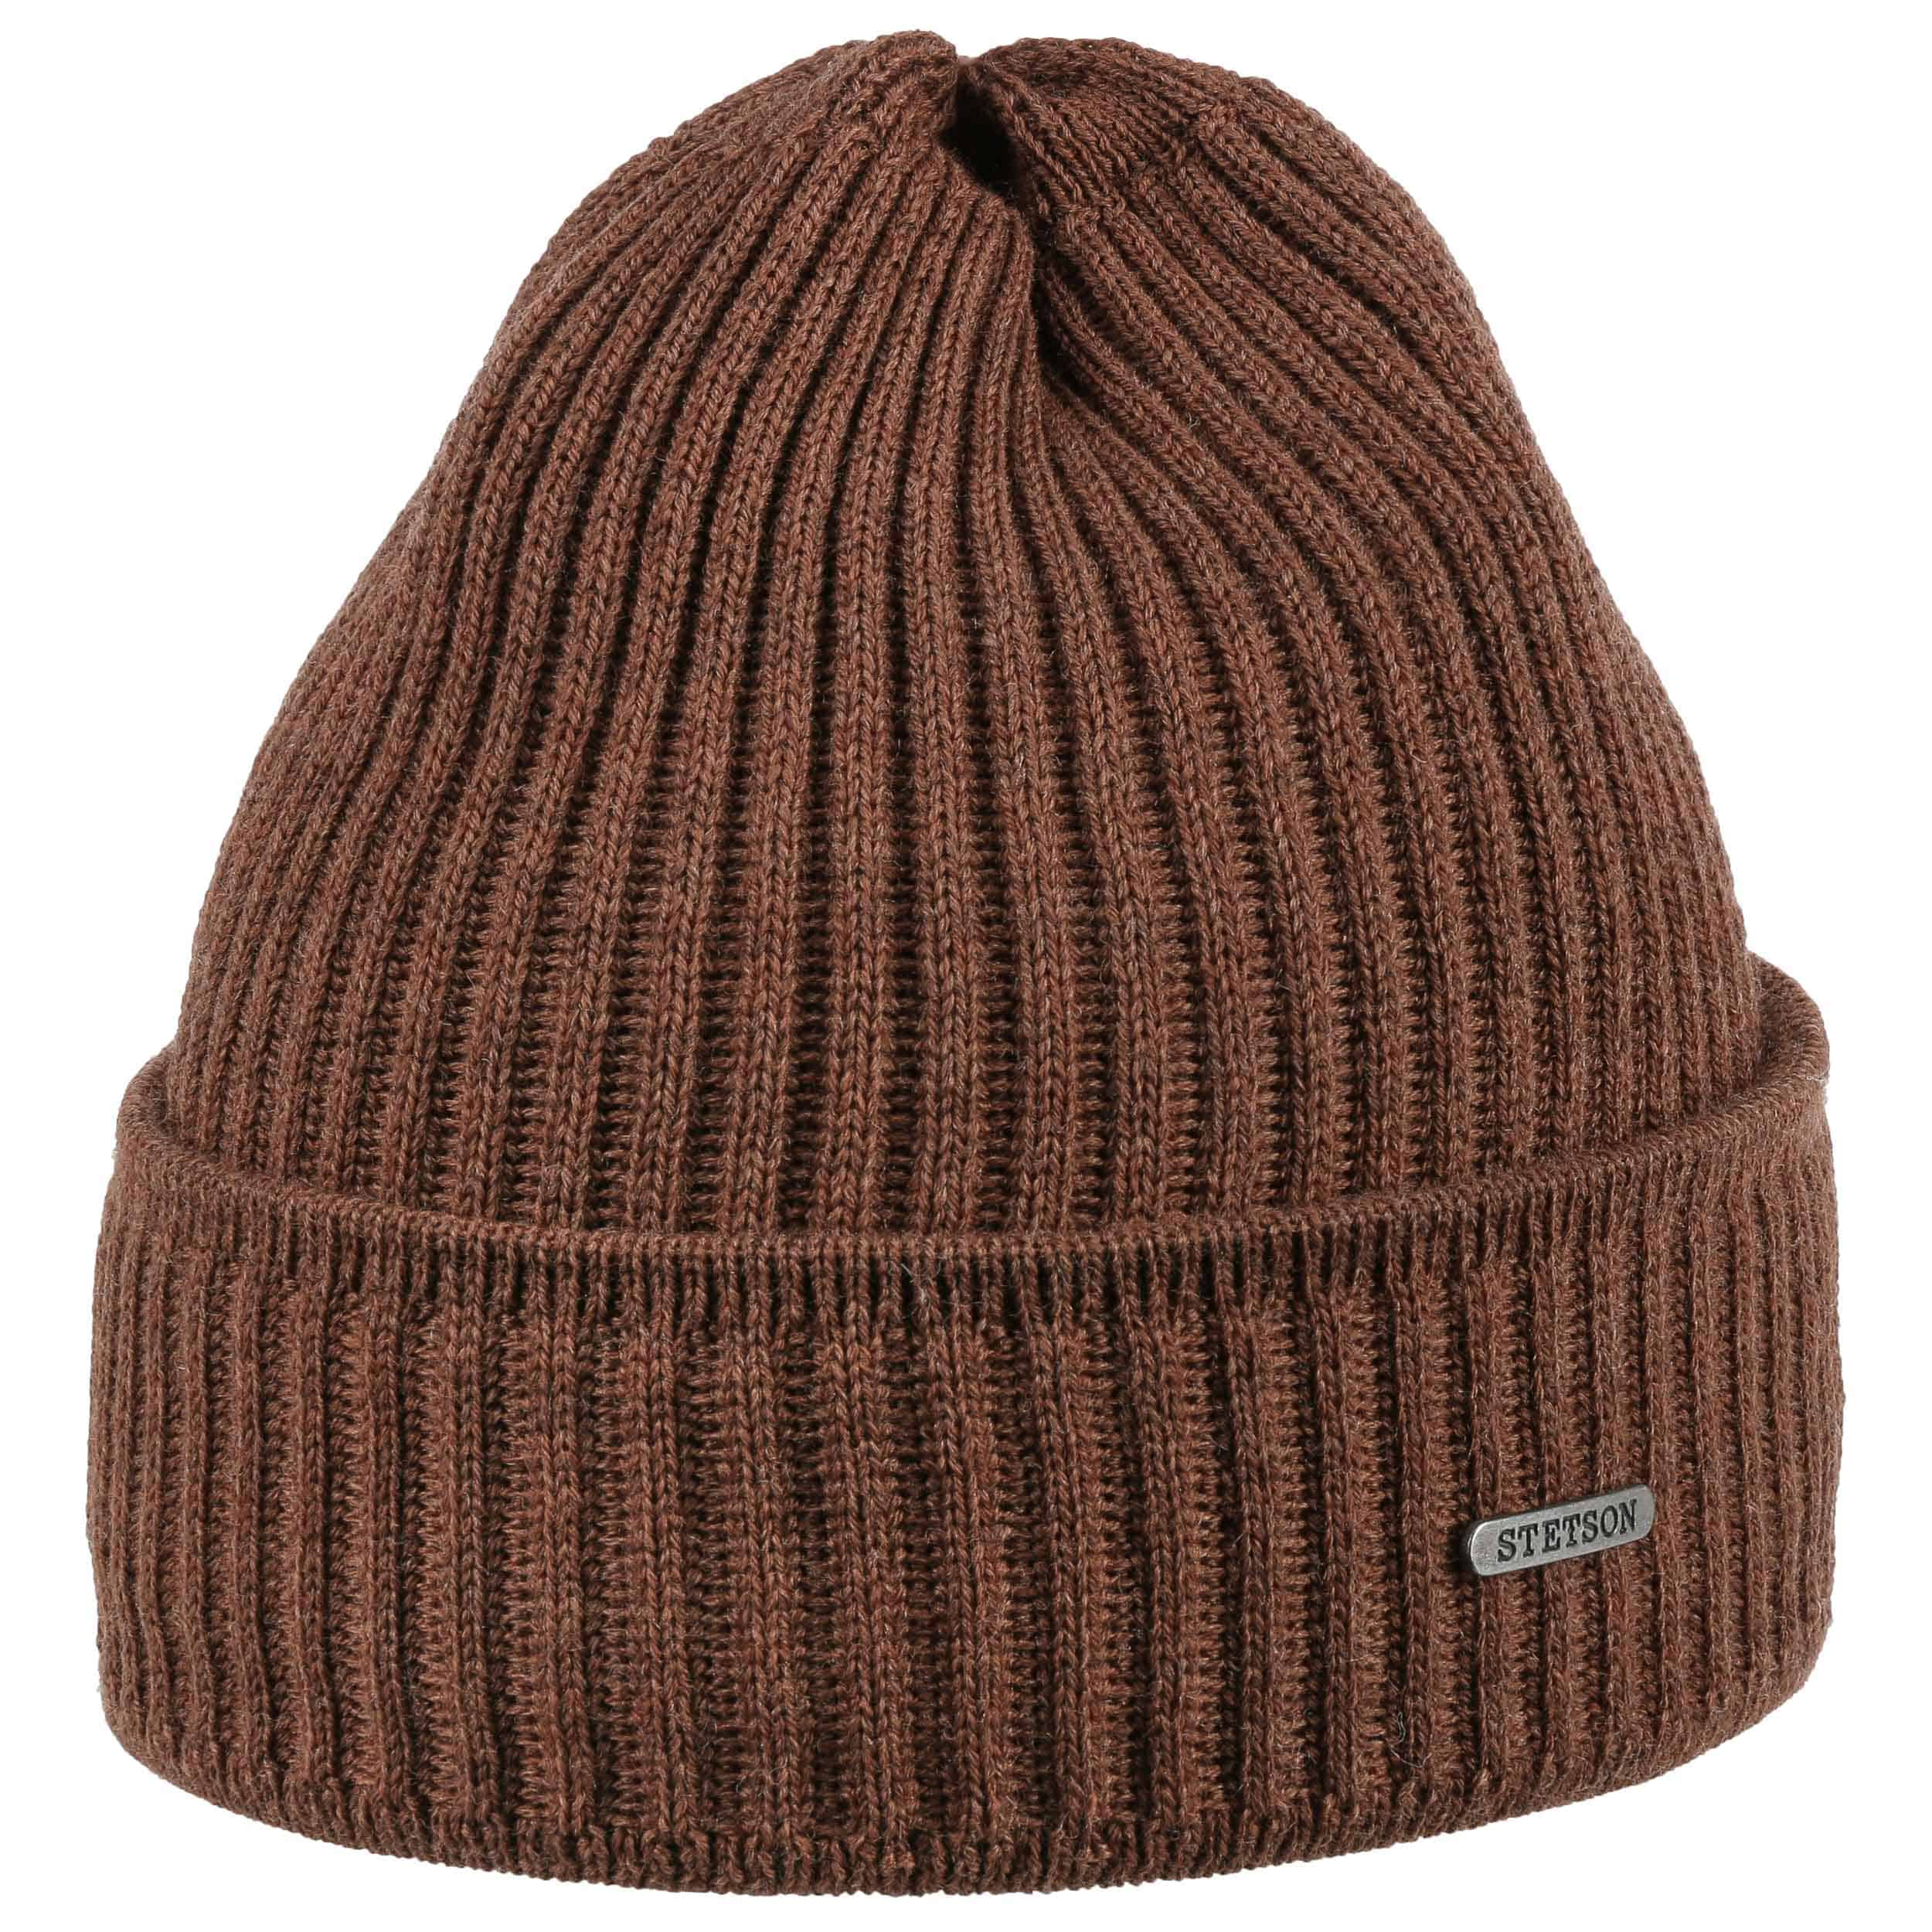 dc3da77943b ... Parkman Knit Hat by Stetson - light brown 3 ...